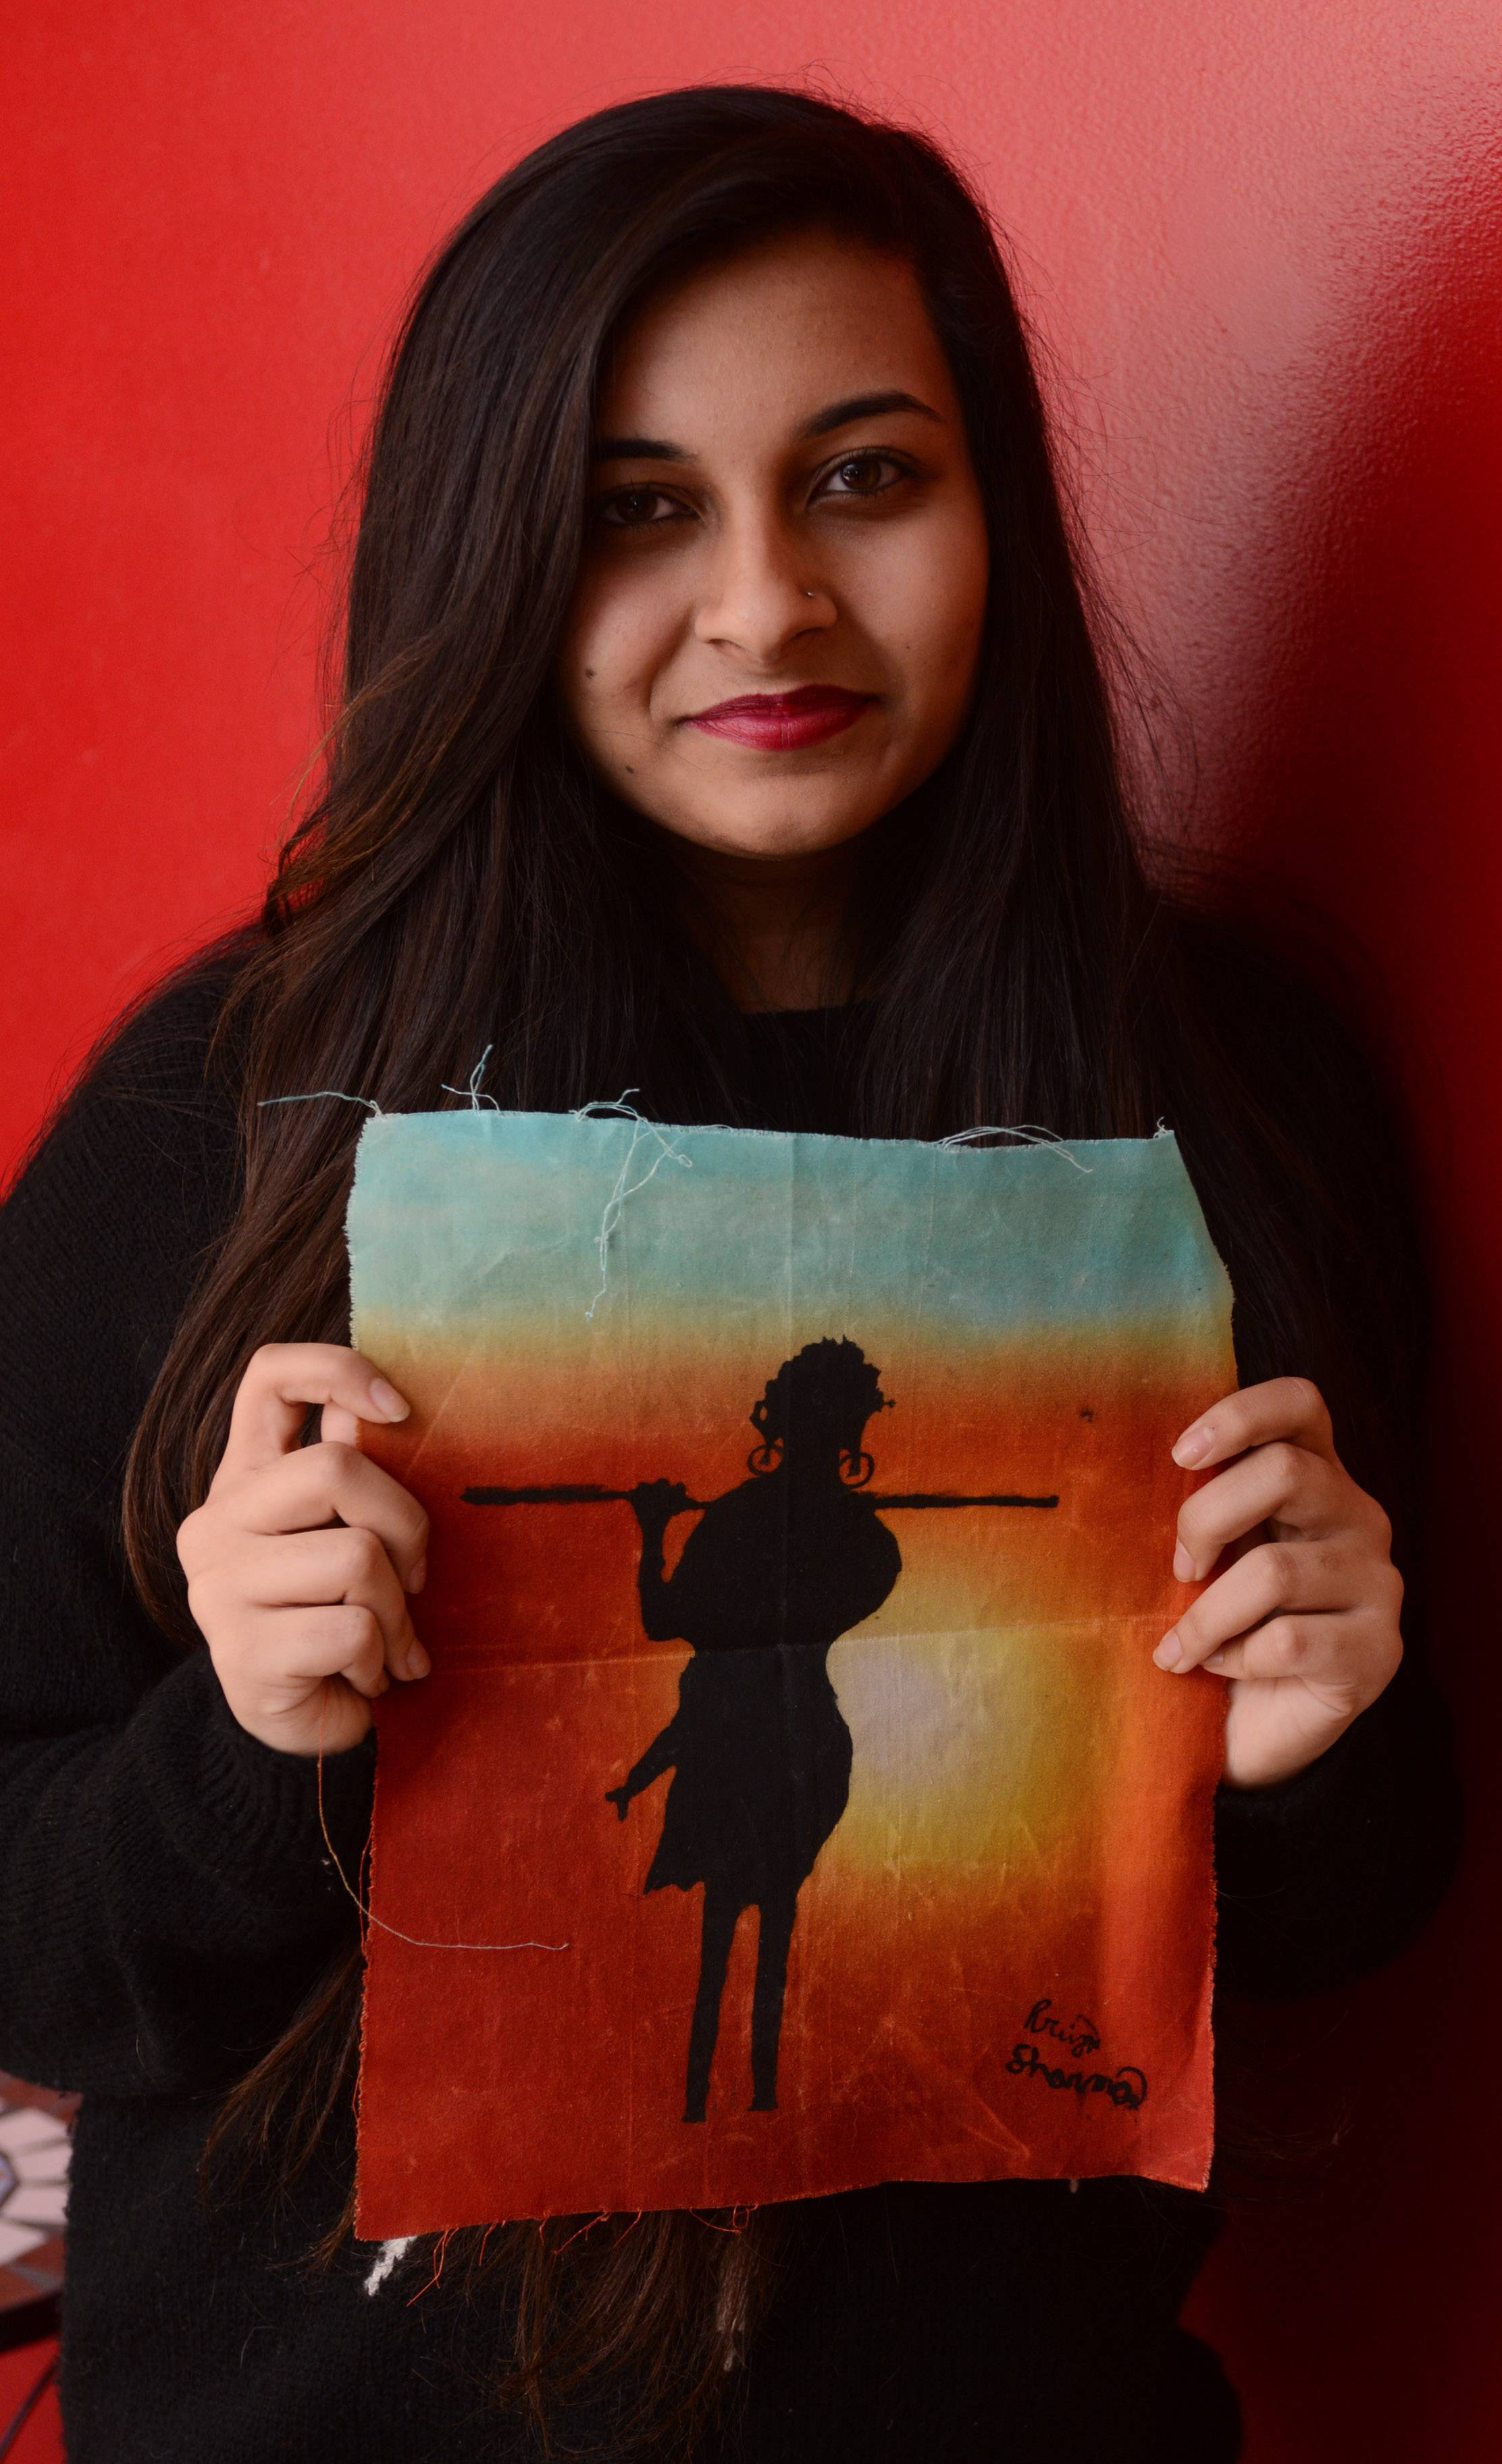 Schaumburg High School junior Priya Sharma spent three weeks in Tanzania over the summer, where she taught math and reading to children in schools and orphanages. She is holding her painting inspired by her experiences in Tanzania.